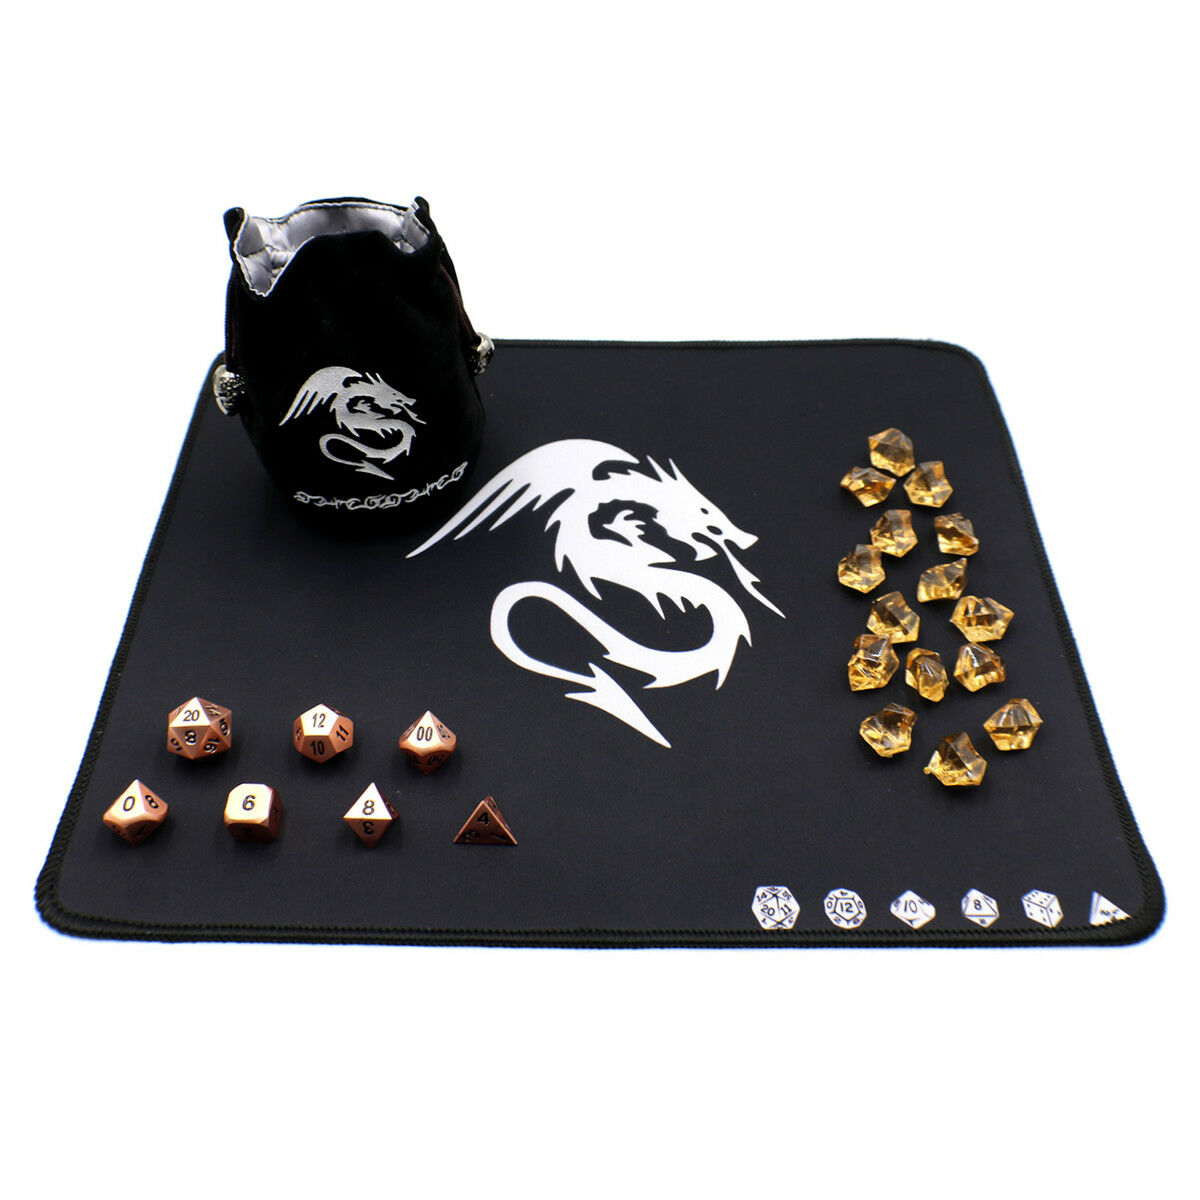 D20 Metal Dice Set with Counters, Dice Bag and Play Mat for D&D - Bronze